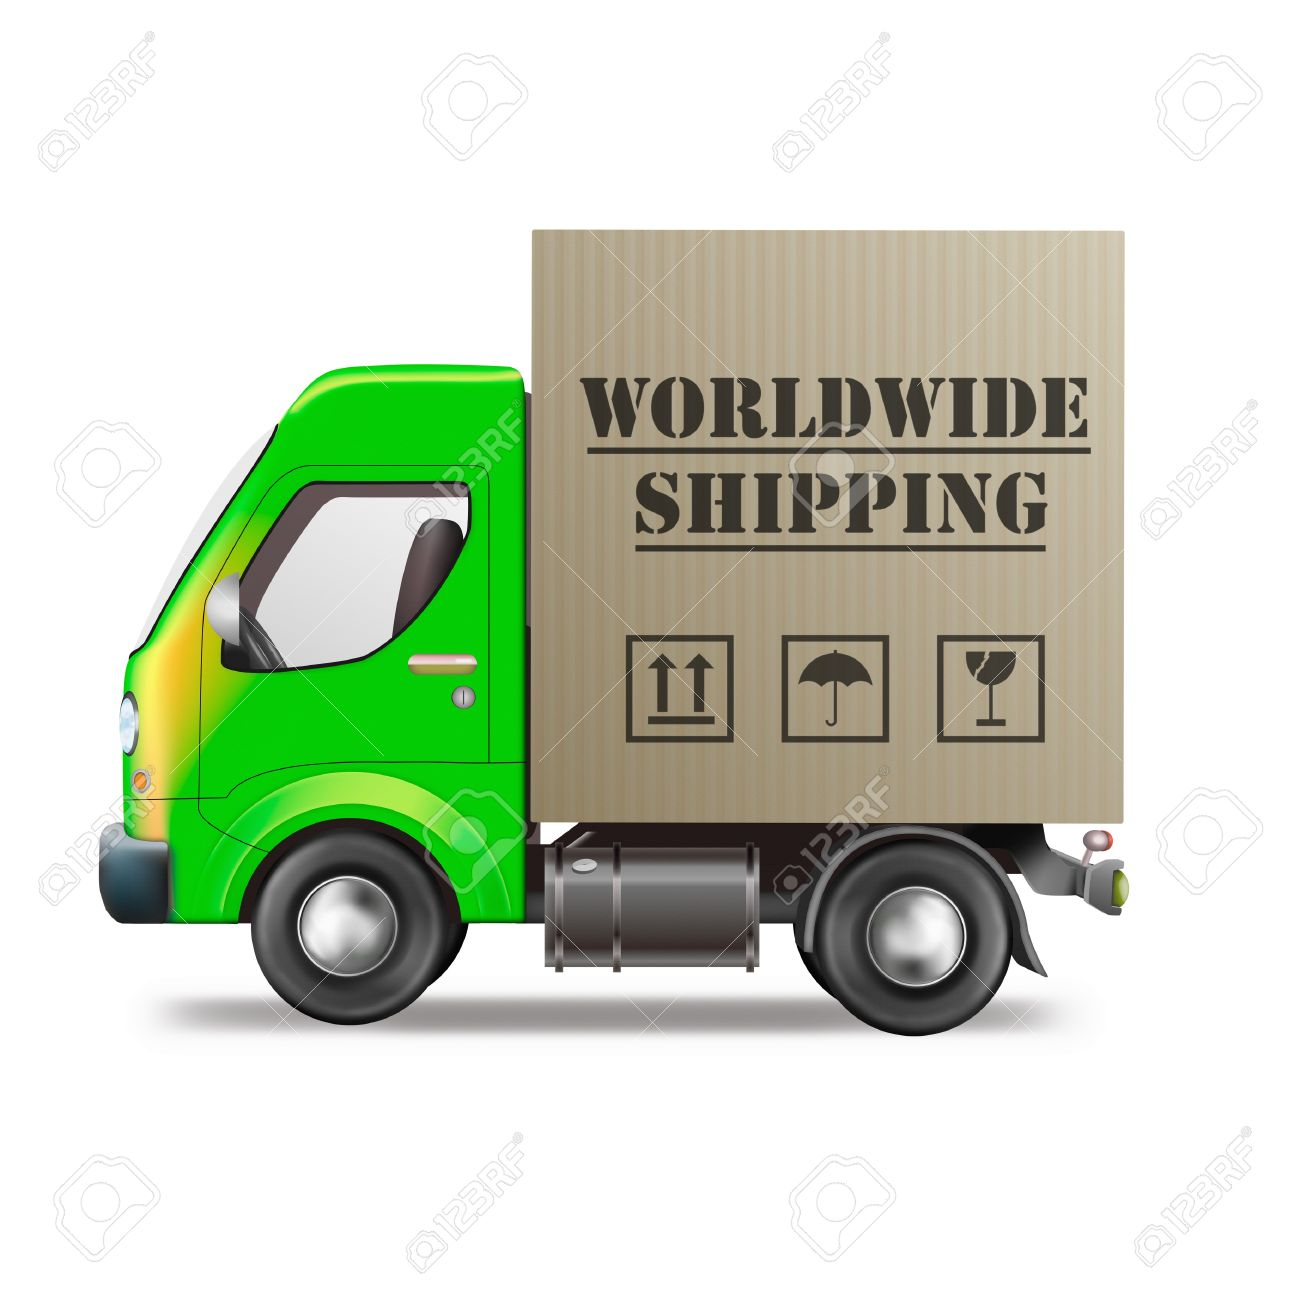 worldwide shipping of online internet order from web shop in delivery truck with cardboard box package global international trade Stock Photo - 9387528